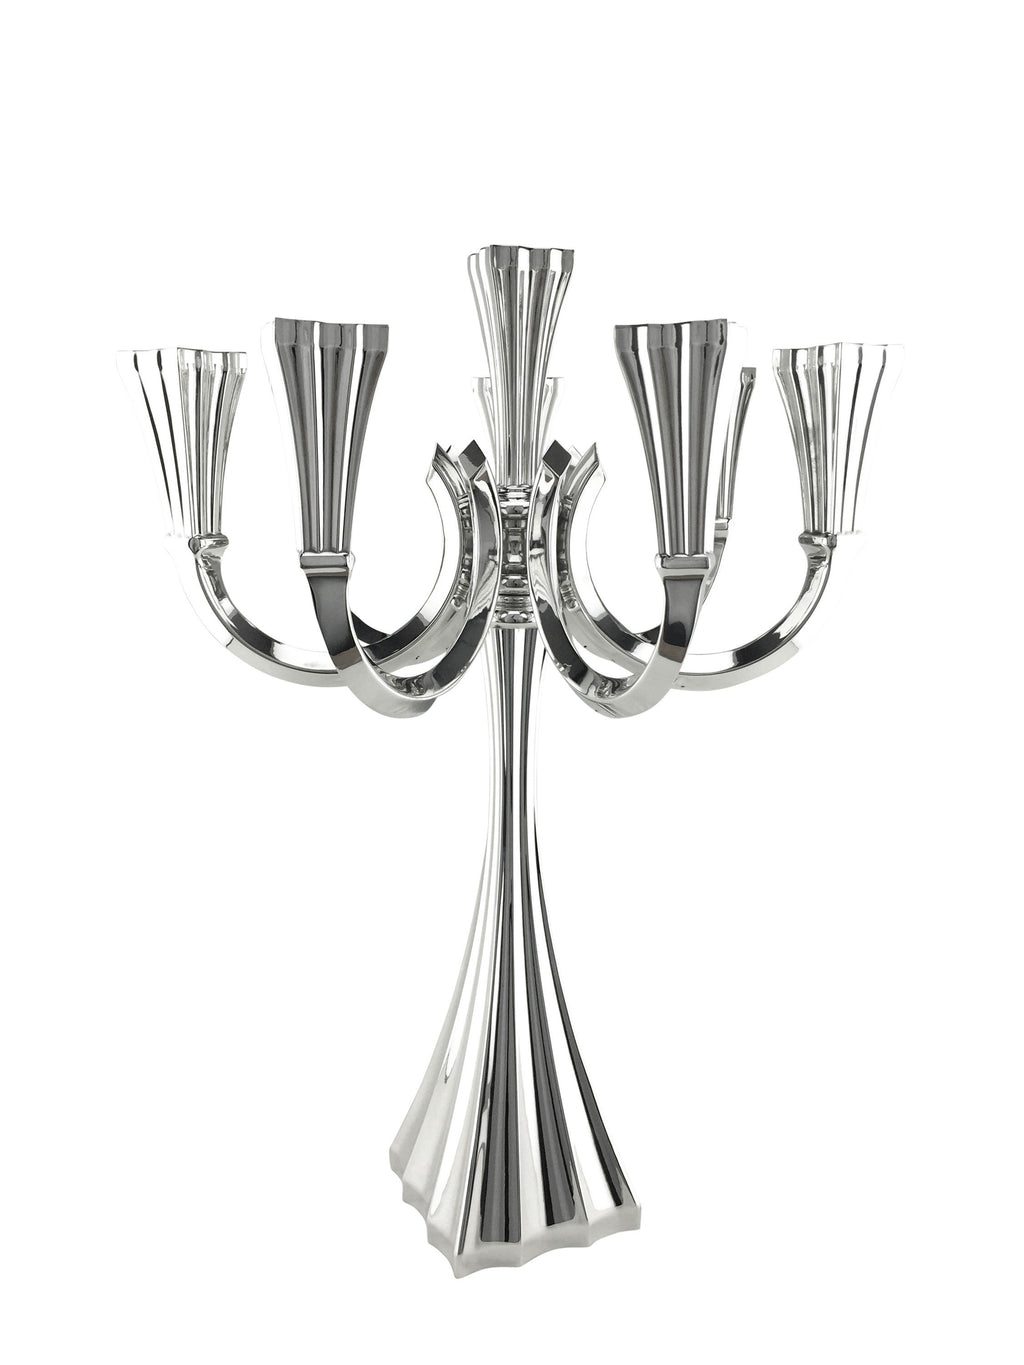 "Galil Smooth 6-Light Sterling 17.5"" Candelabra"